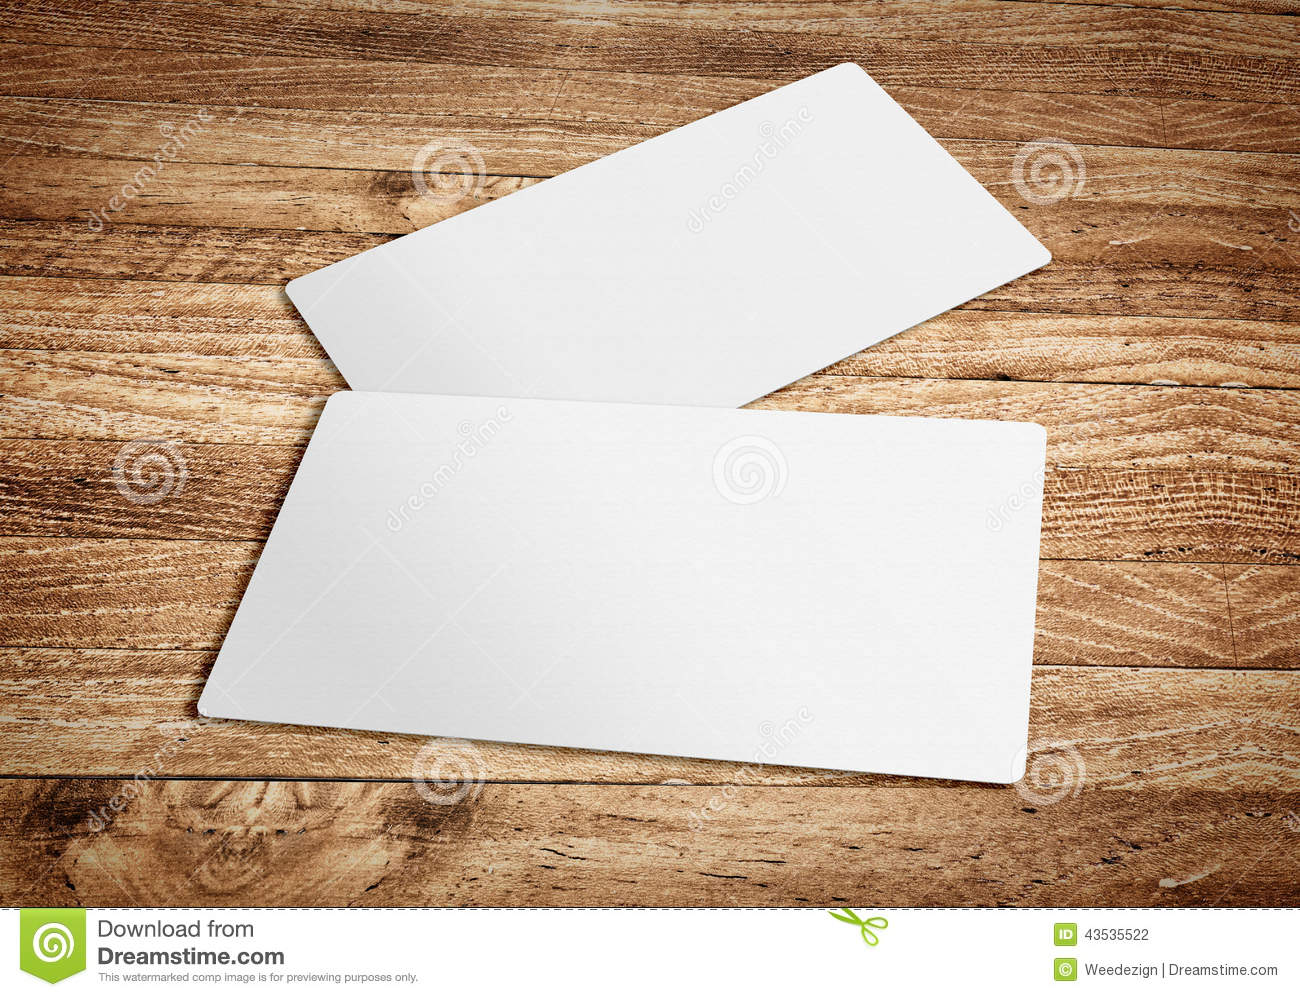 Business card template on wooden board tabletemplate for brandi download business card template on wooden board tabletemplate for brandi stock photo image reheart Choice Image